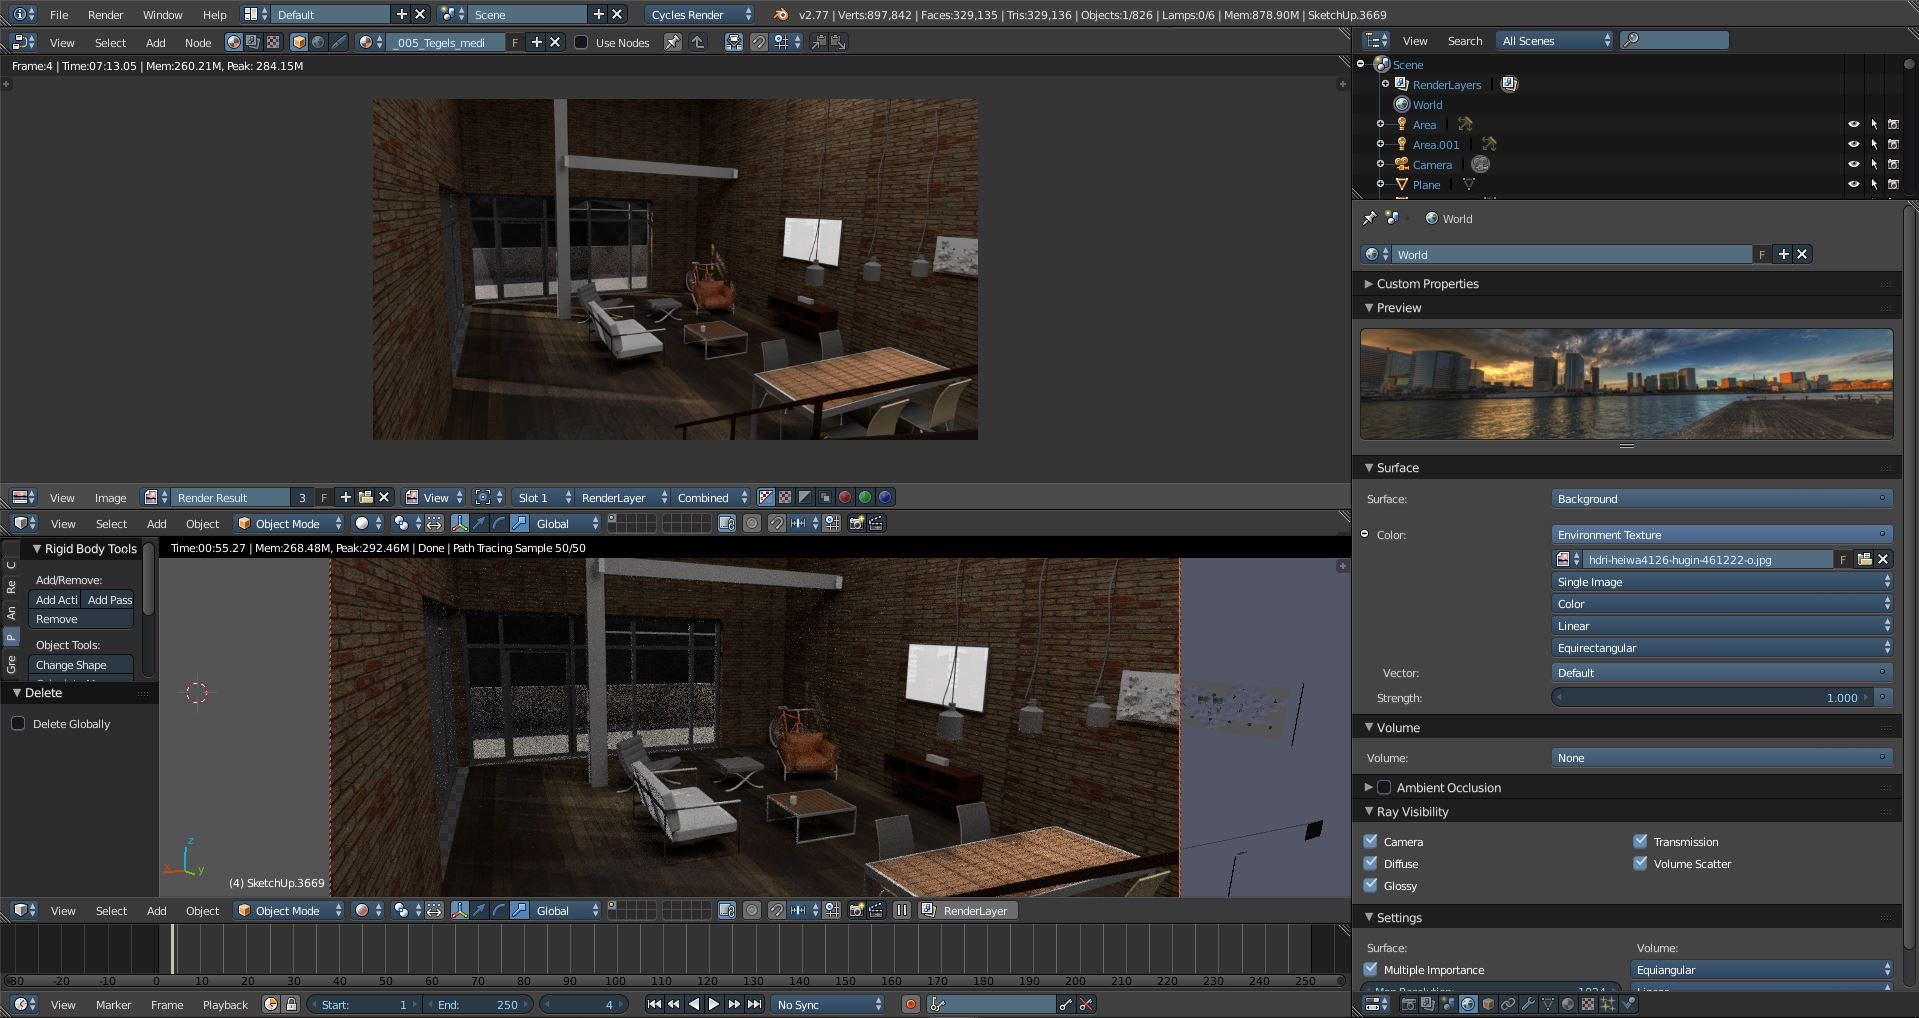 HDRI image not showing - Materials and Textures - Blender